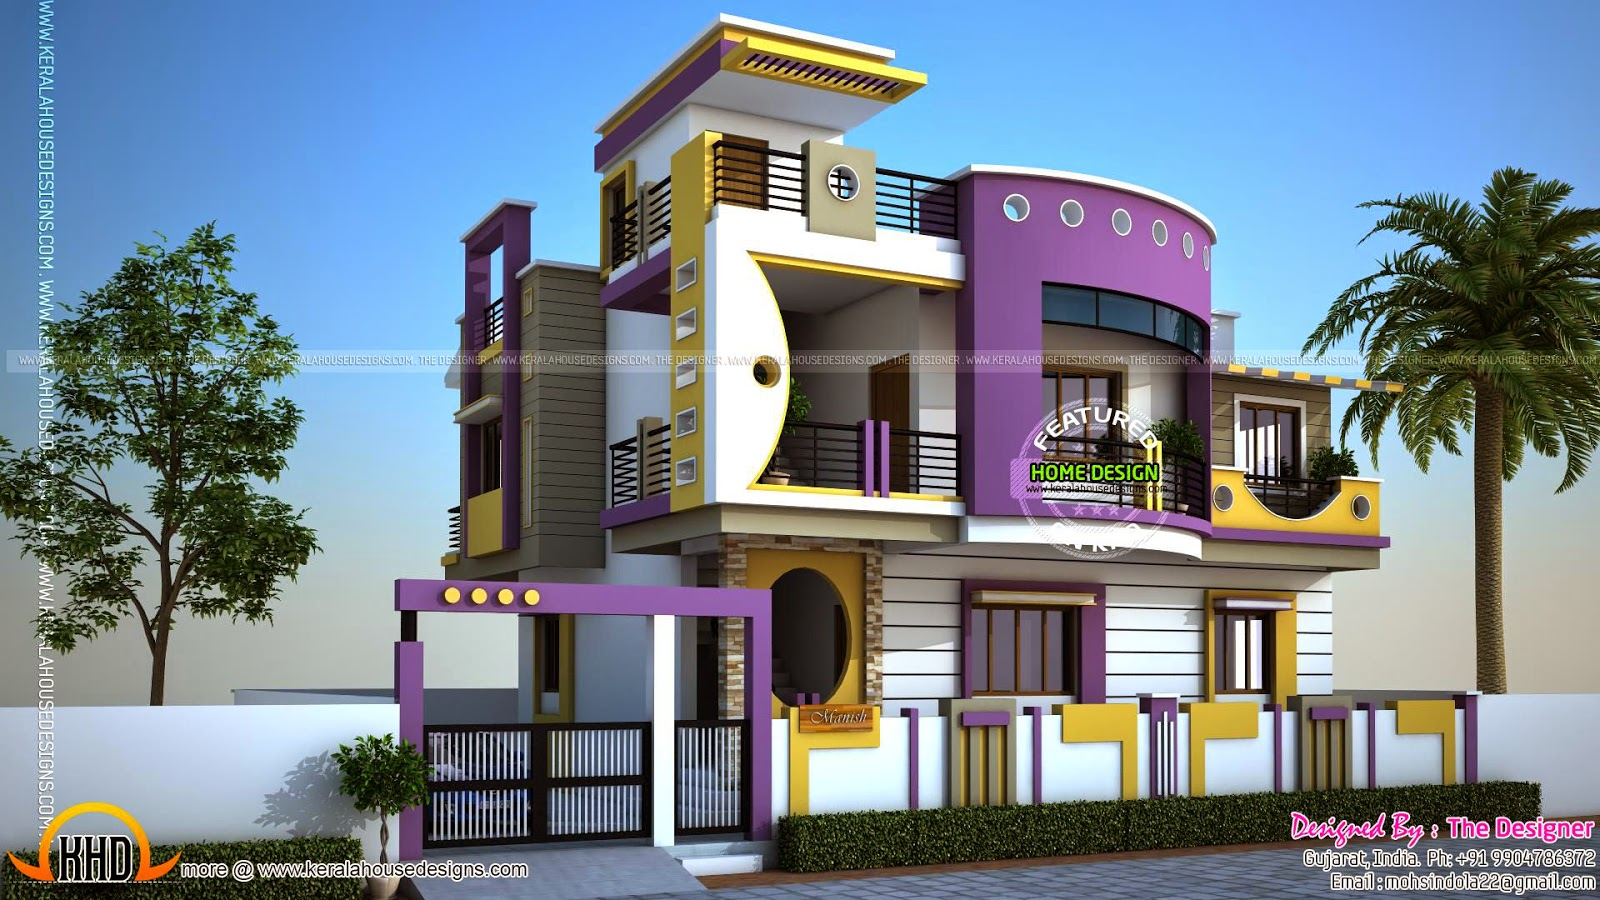 House exterior designs in contemporary style kerala home for Exterior house designs indian style